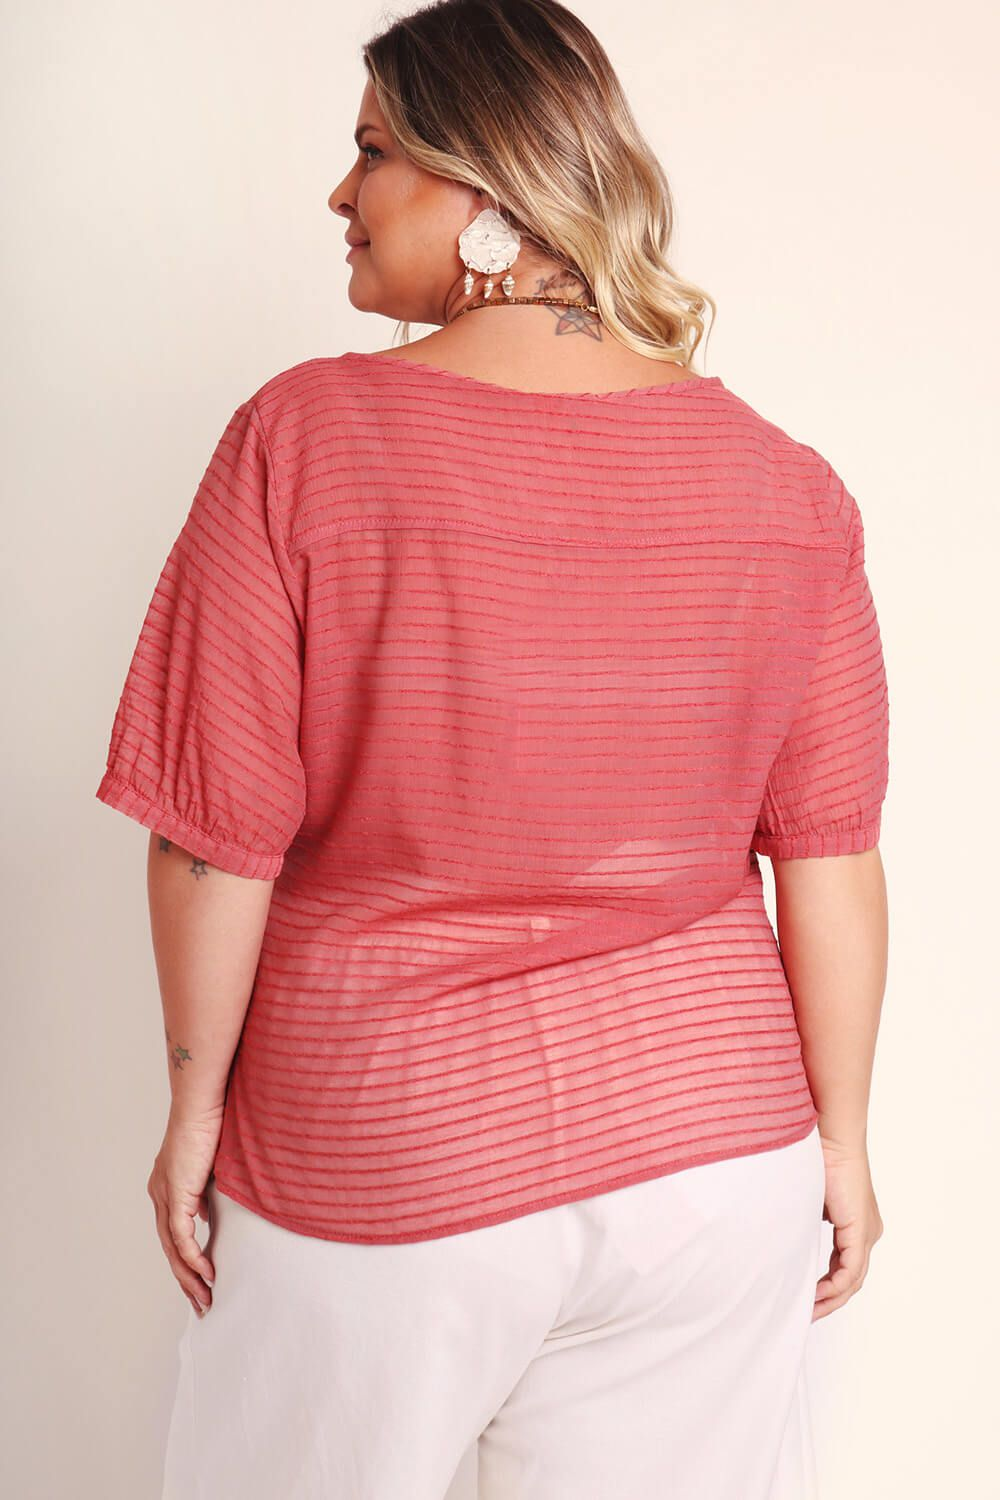 BLUSA PLUS SIZE LISA ROSA